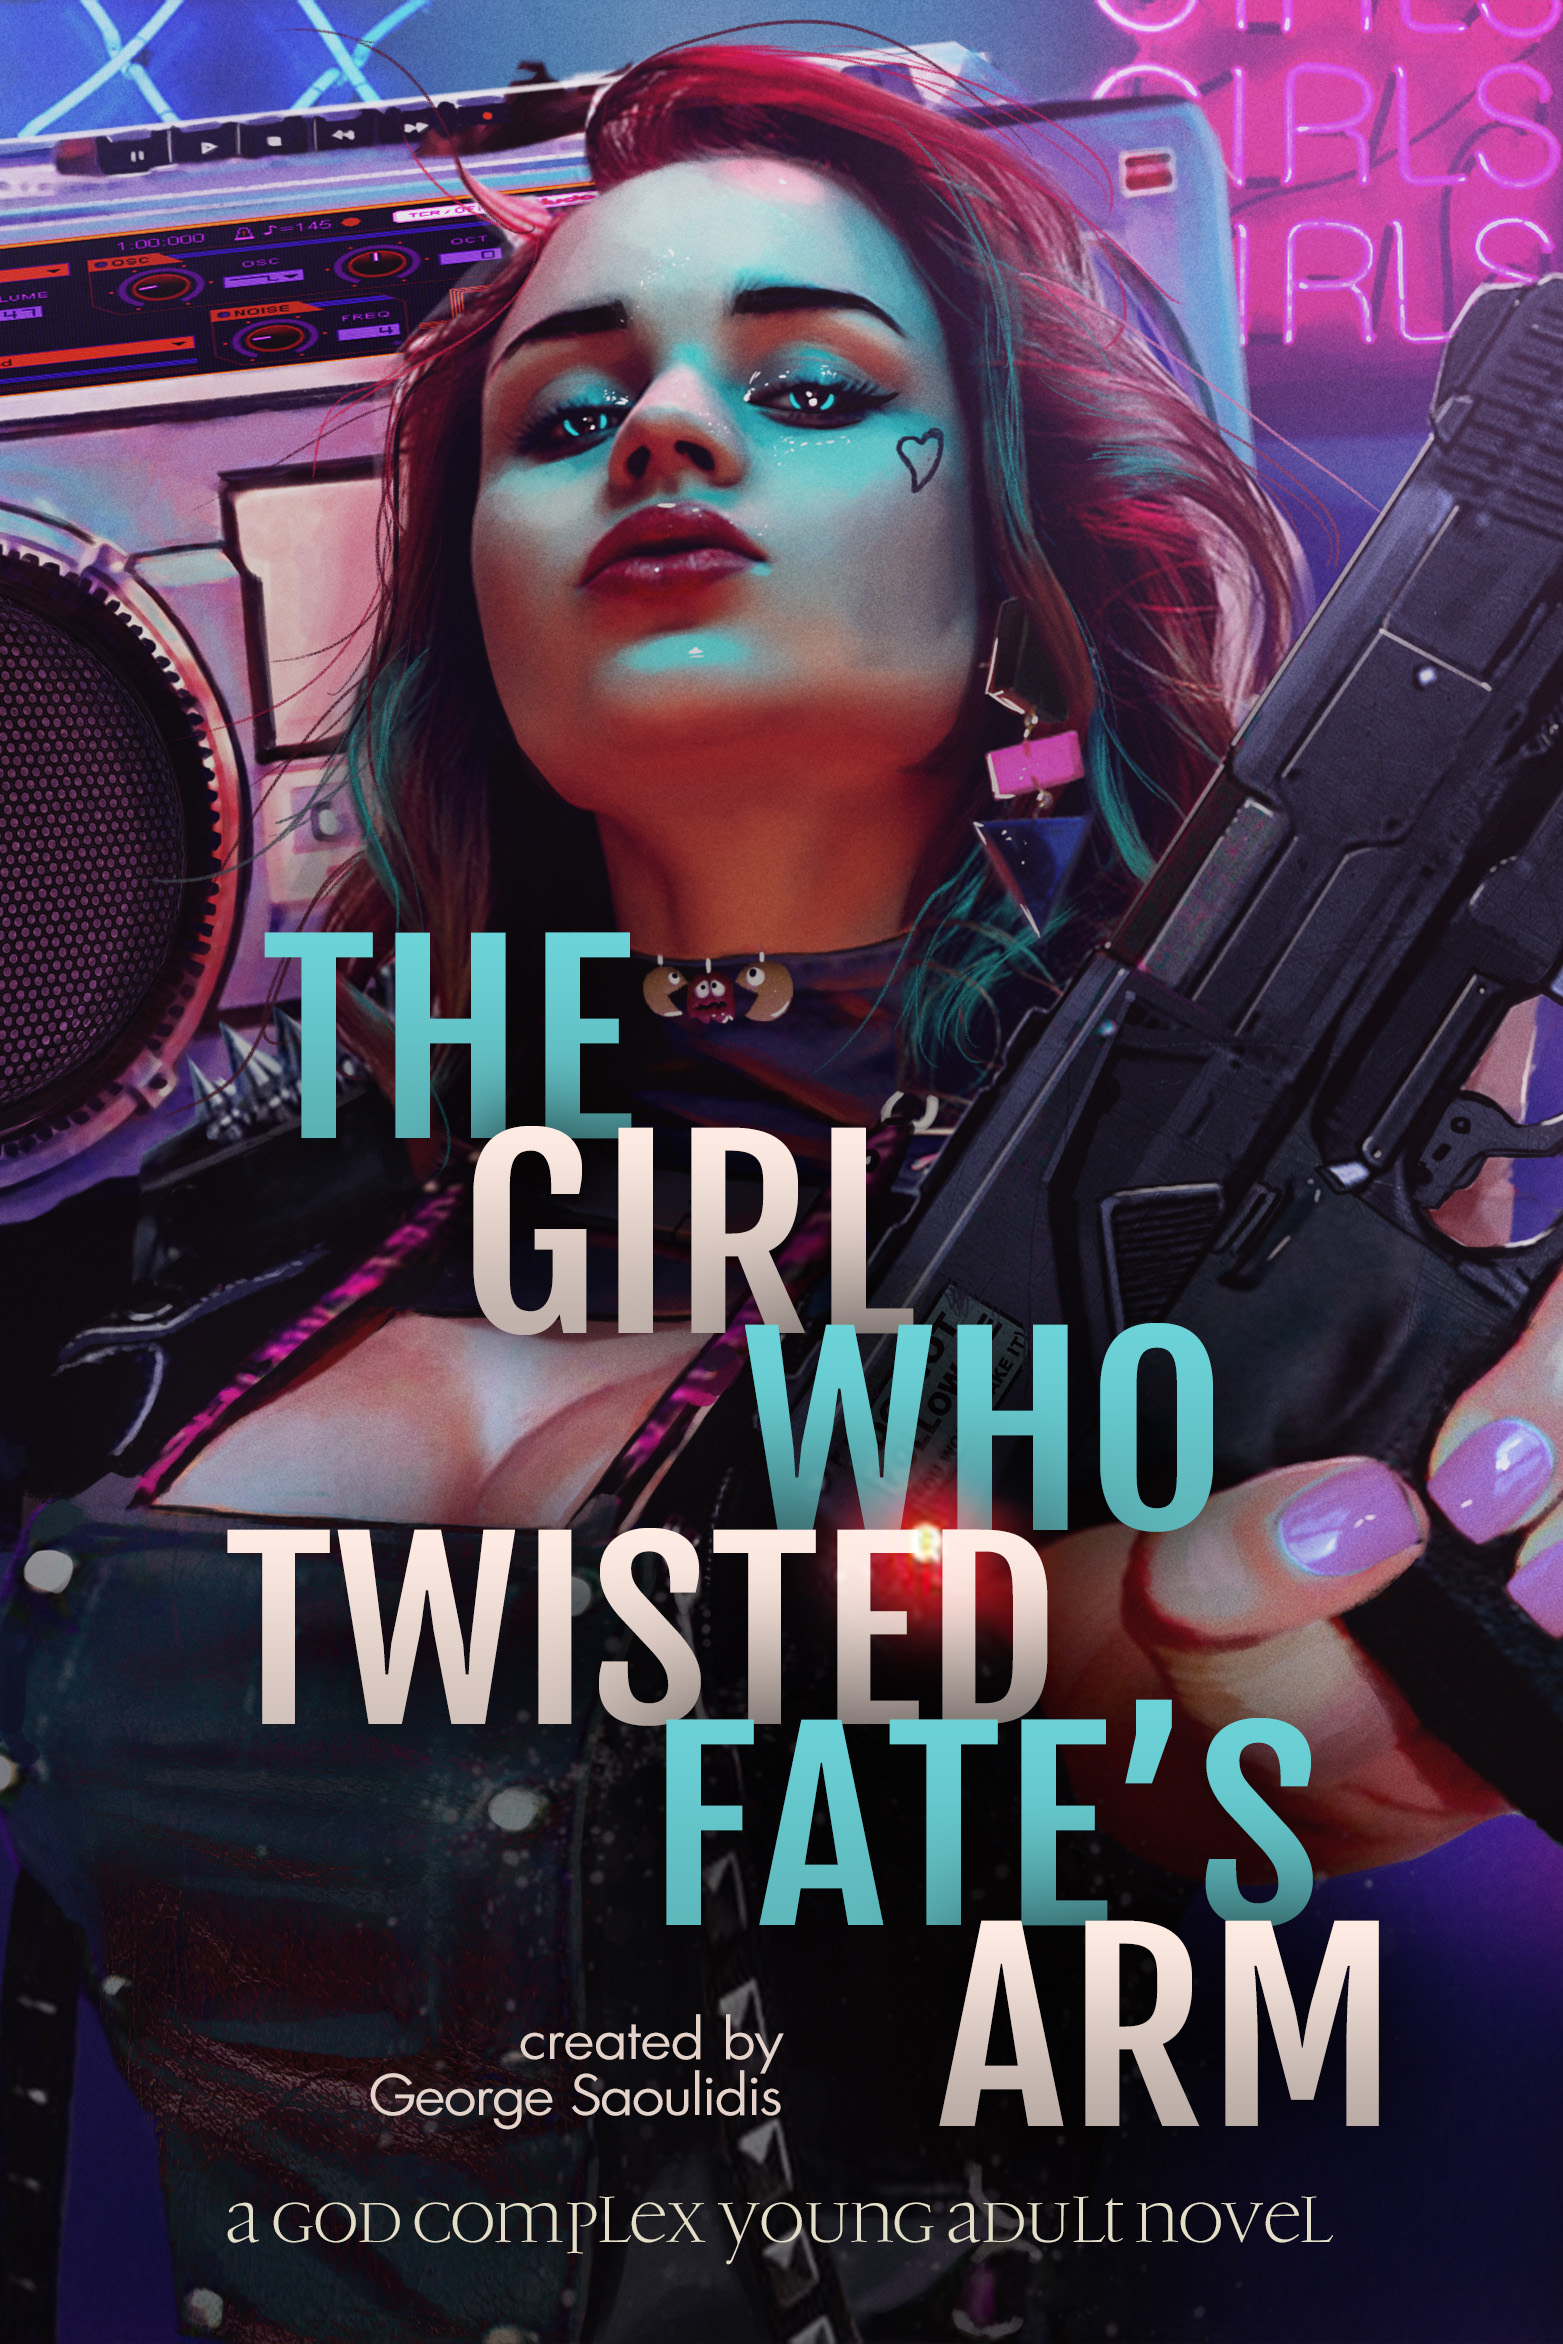 The girl who twisted fate's arm